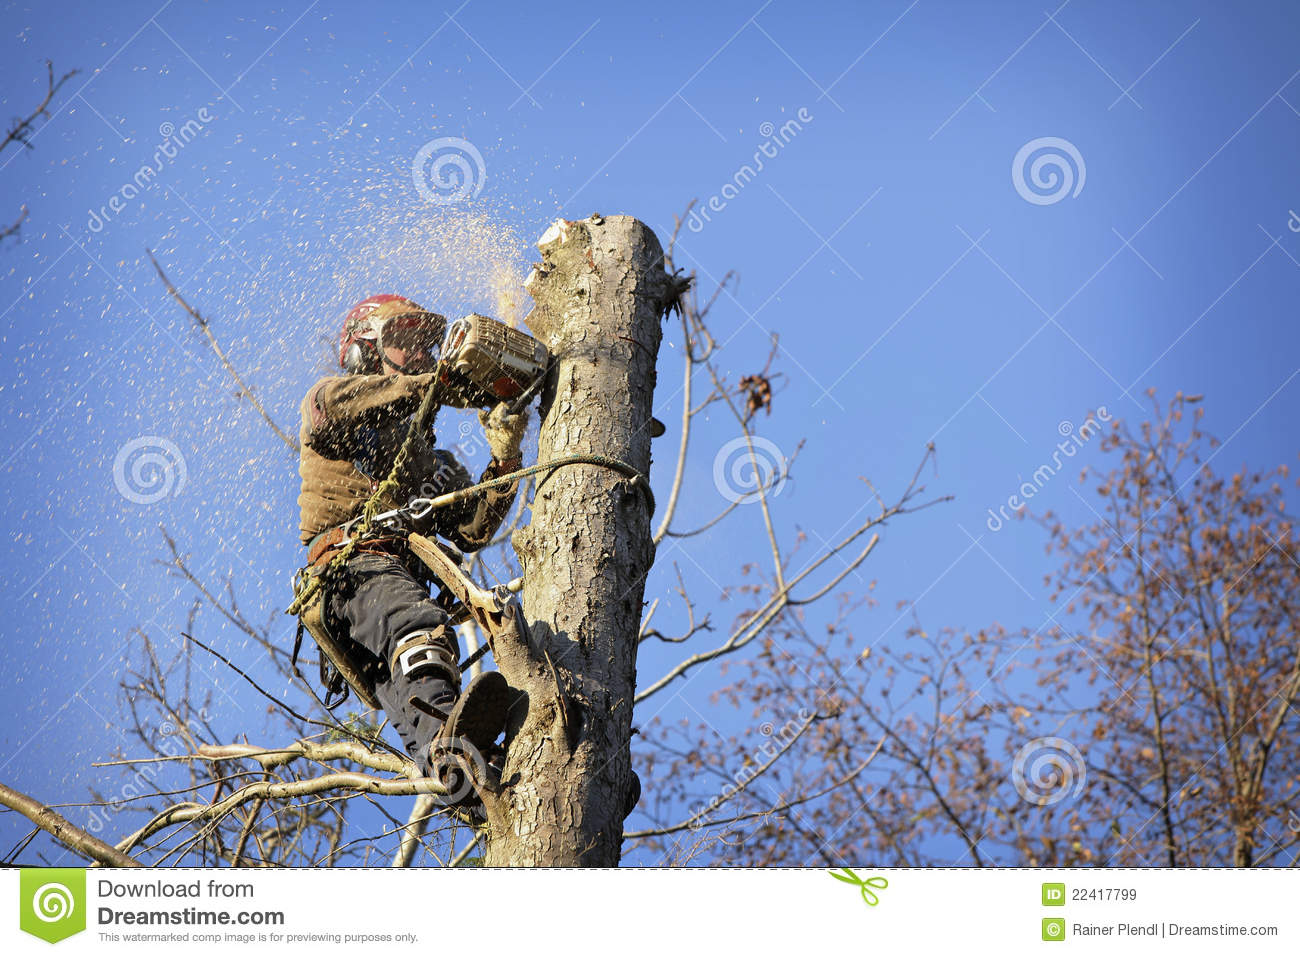 how to find an arborist